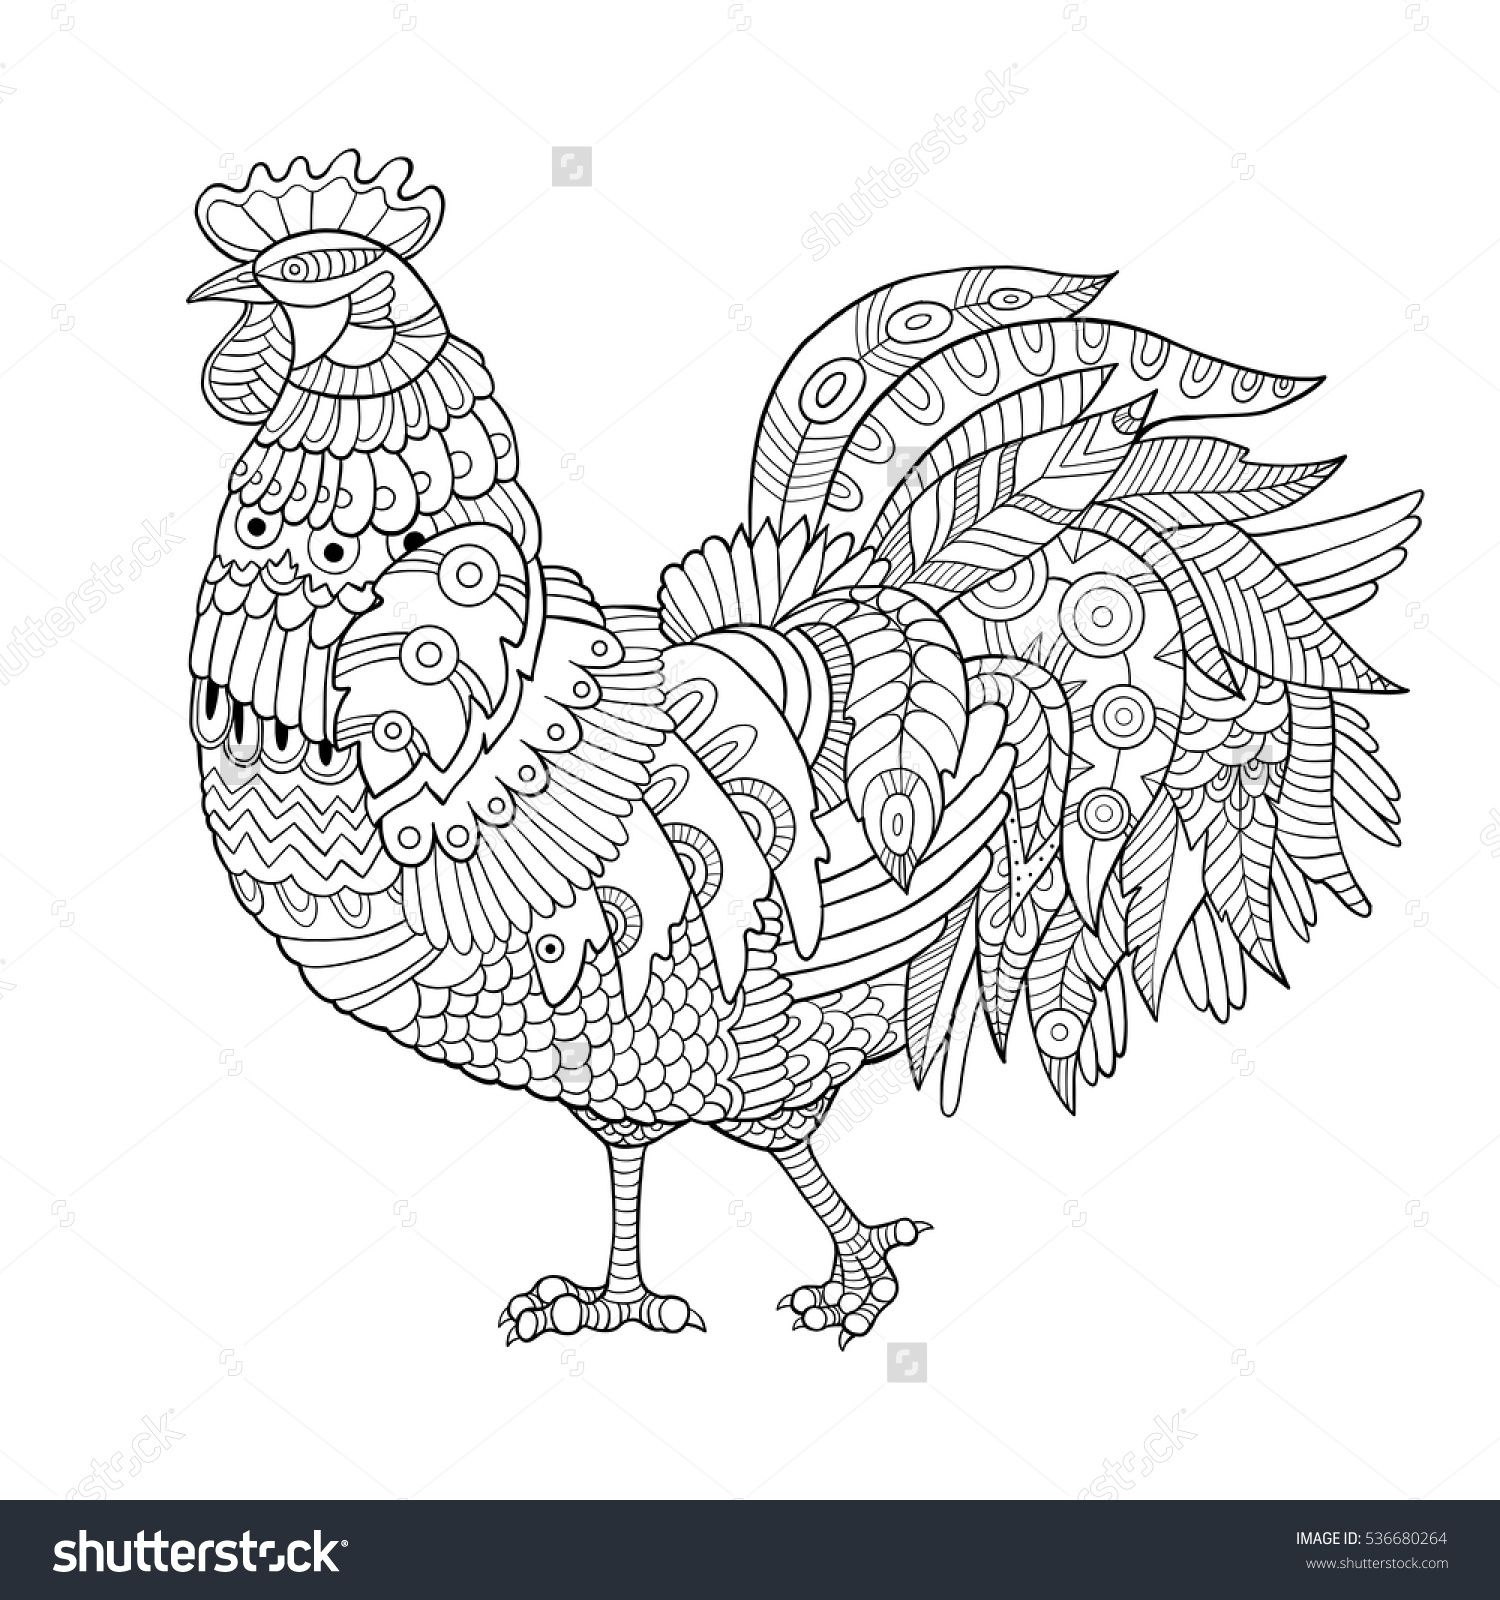 Coloring Pages For Adults Rooster : Rooster coloring book for adults vector illustration anti